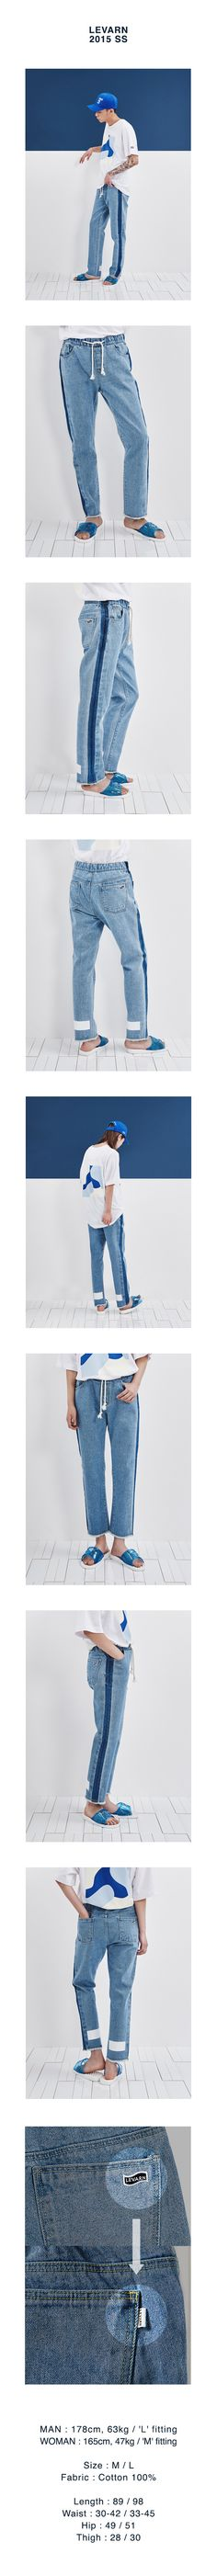 LINE-WASHED JEANS